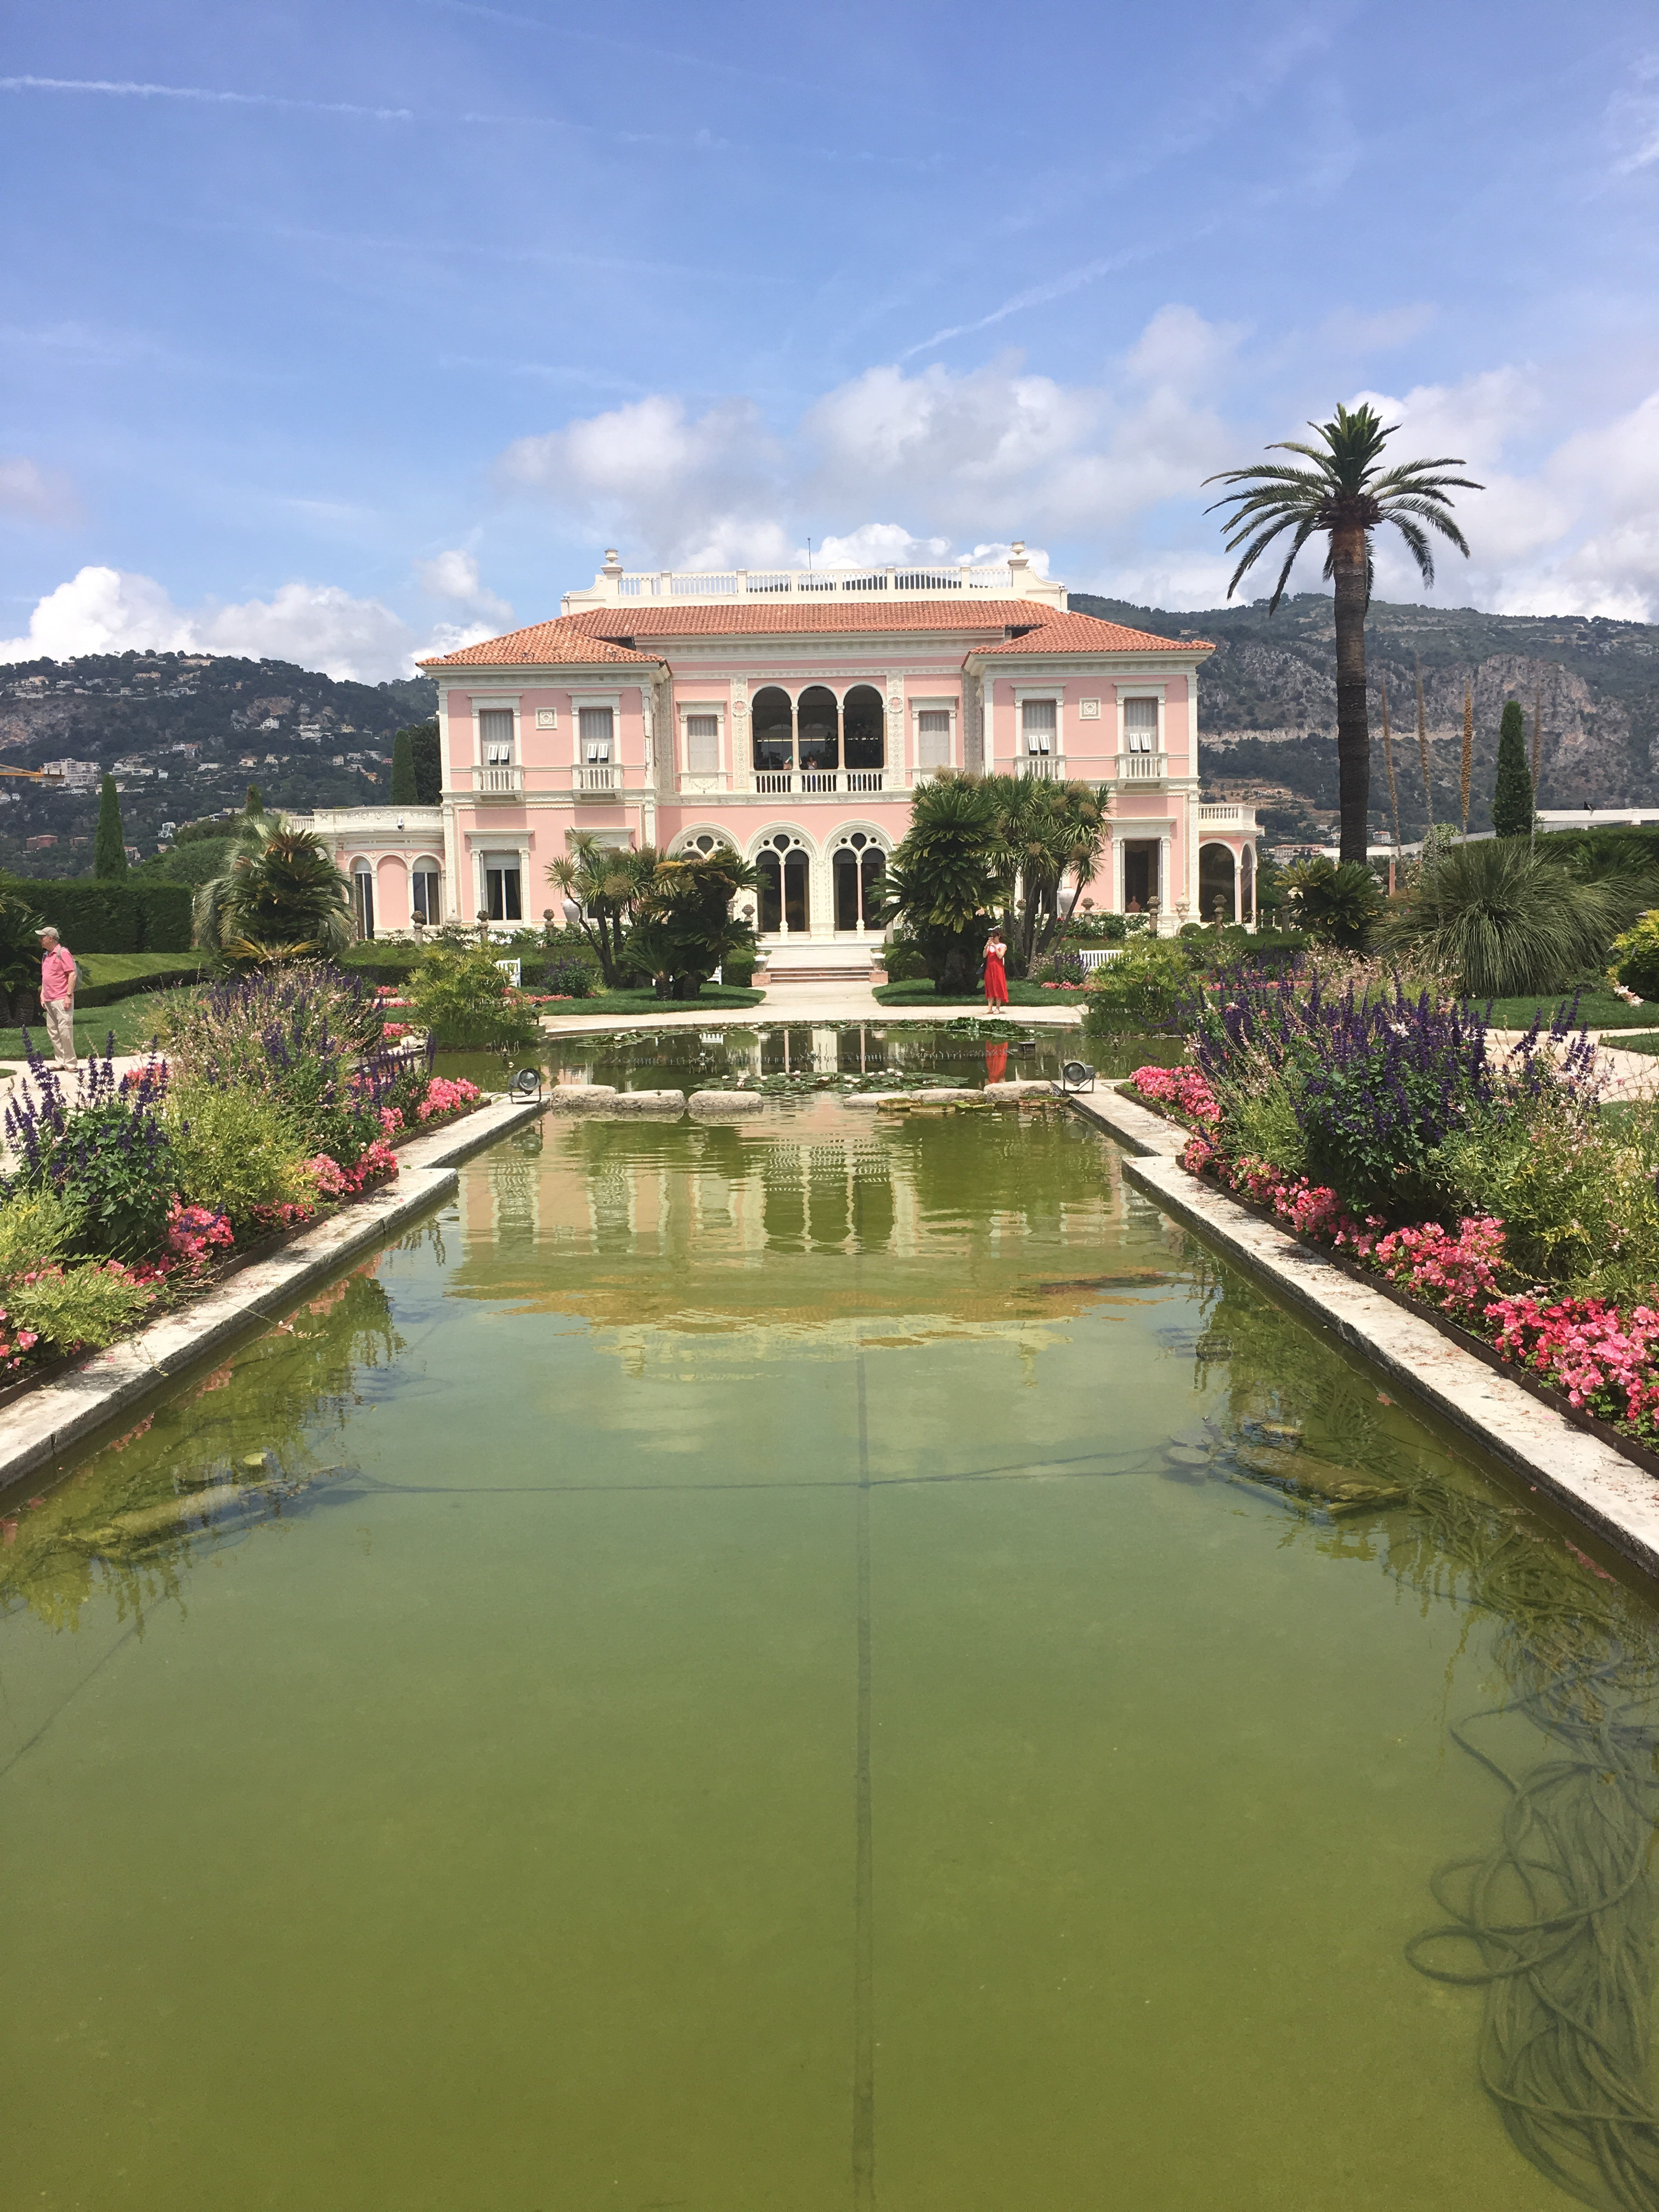 Villa Ephrussi De Rothschild An Ode To The Arts And